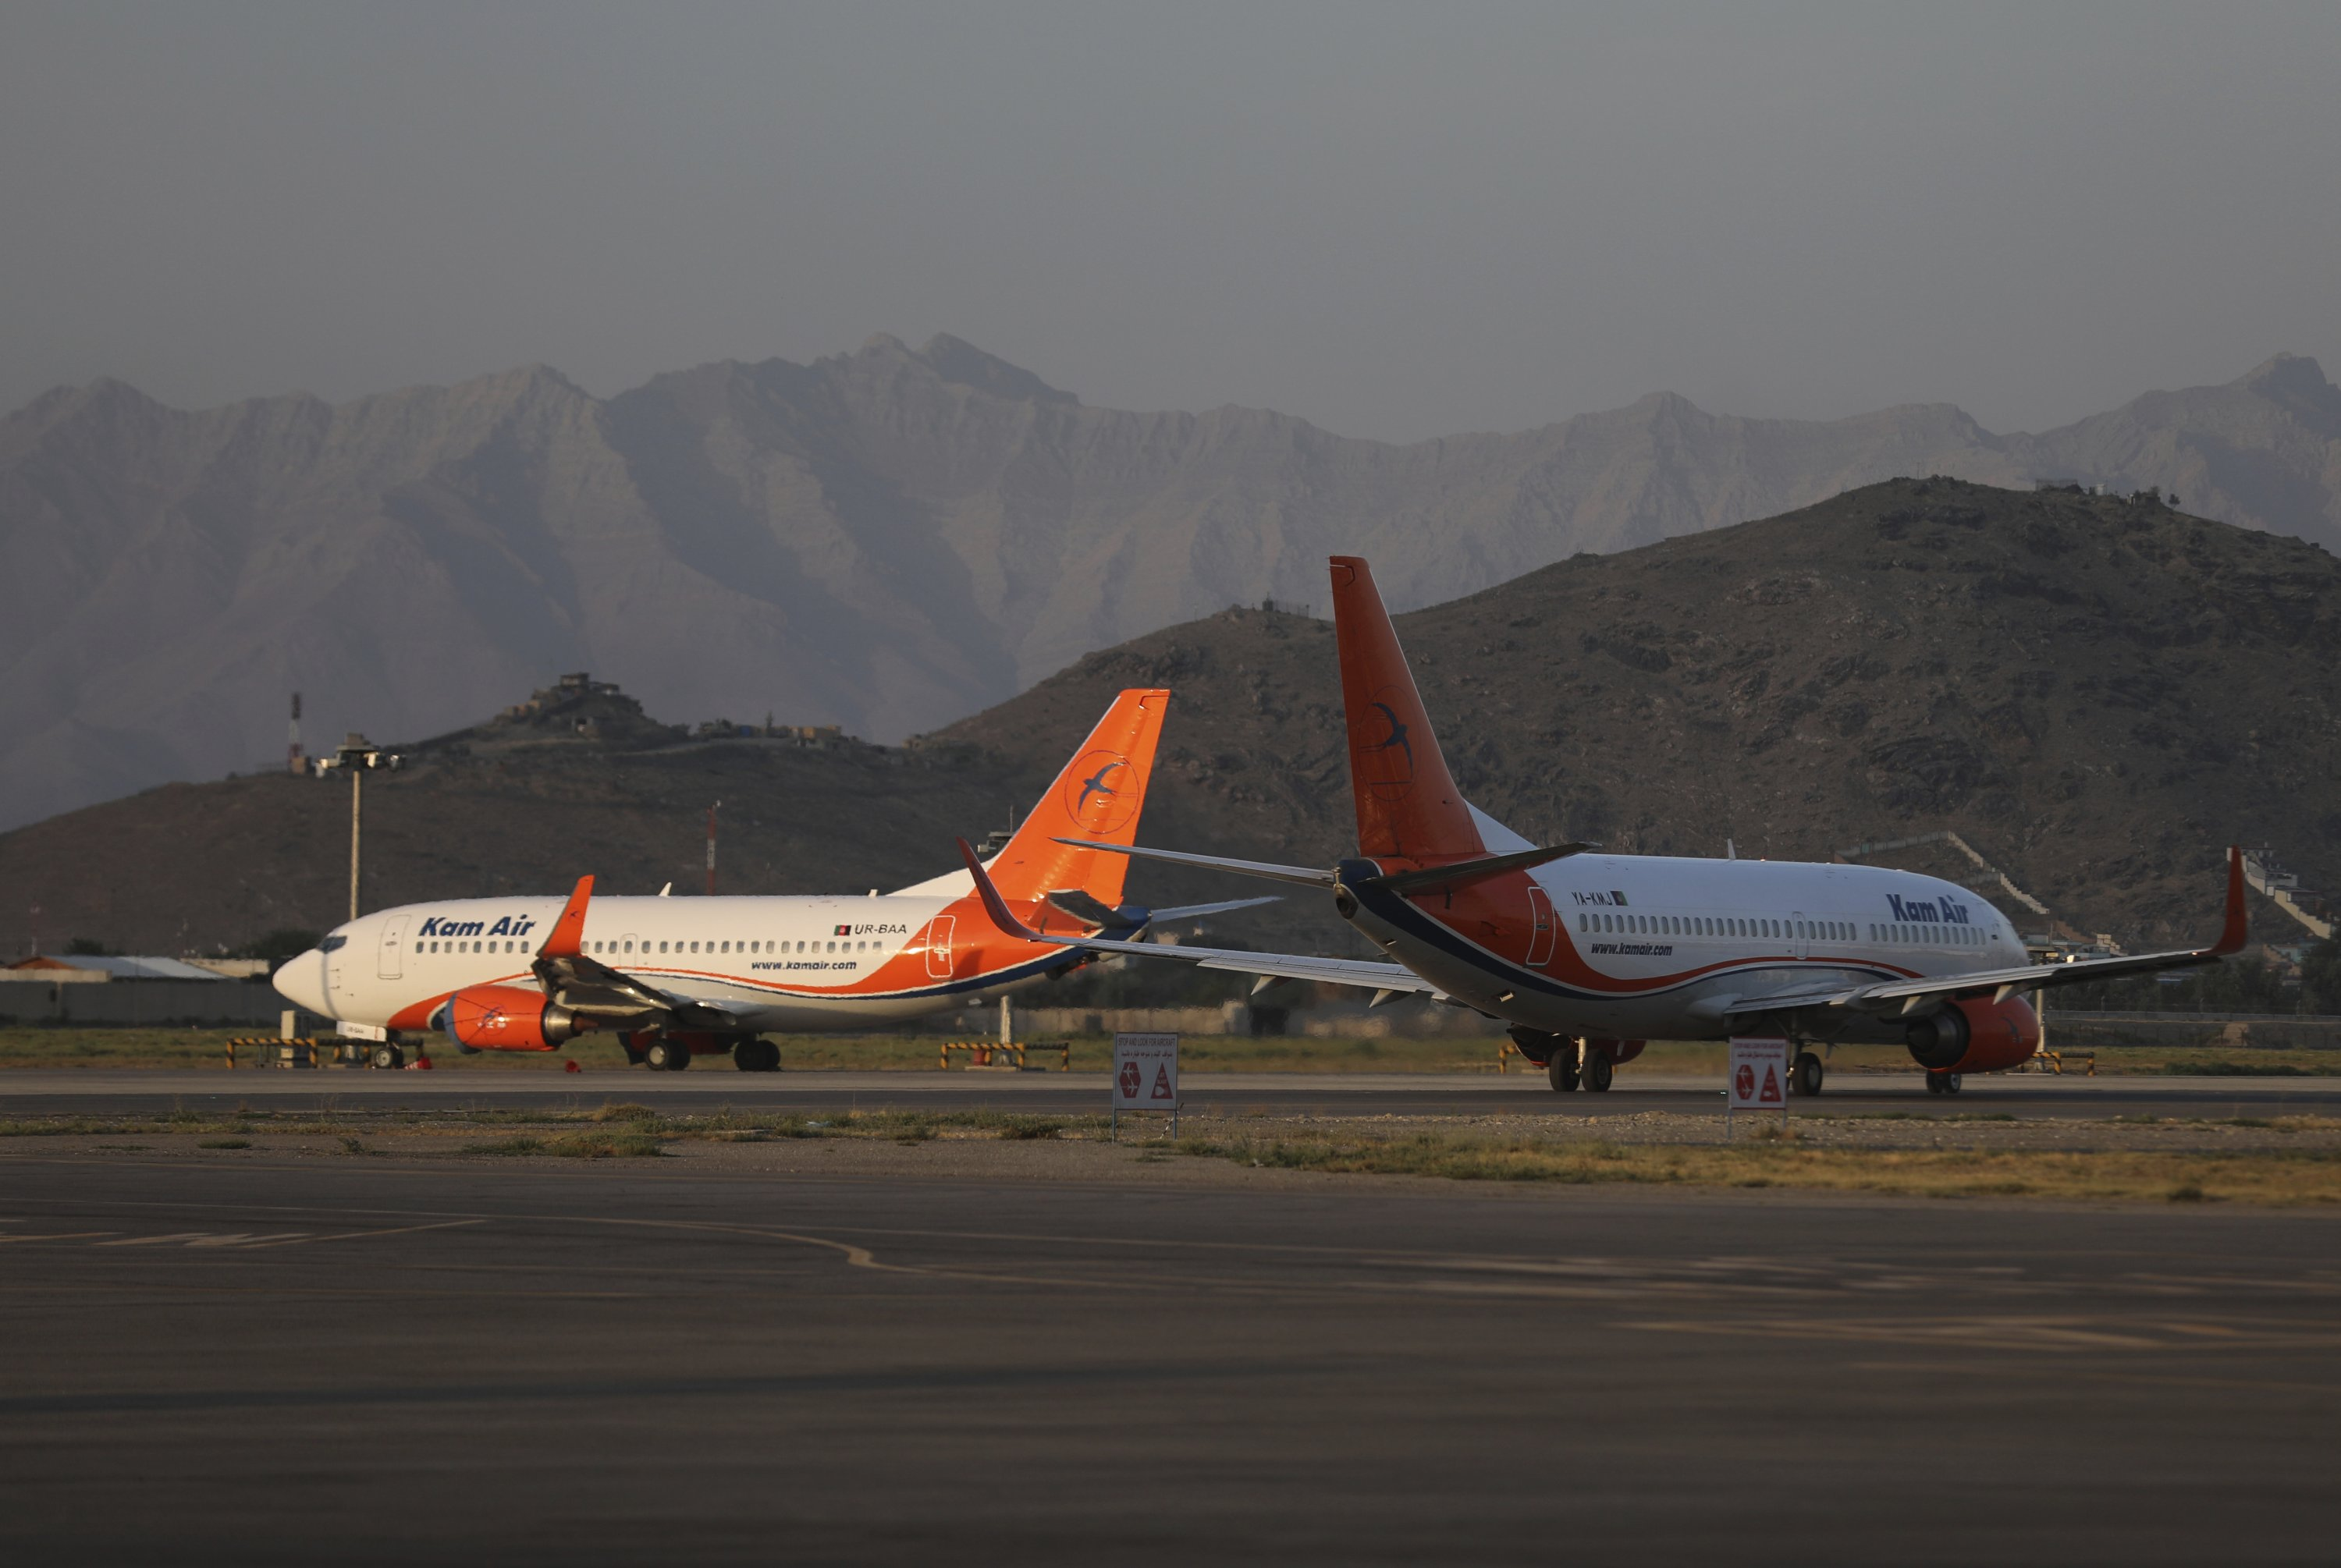 Kam Air planes are parked at Hamid Karzai International Airport in Kabul, Afghanistan, July 4, 2021. (AP Photo)